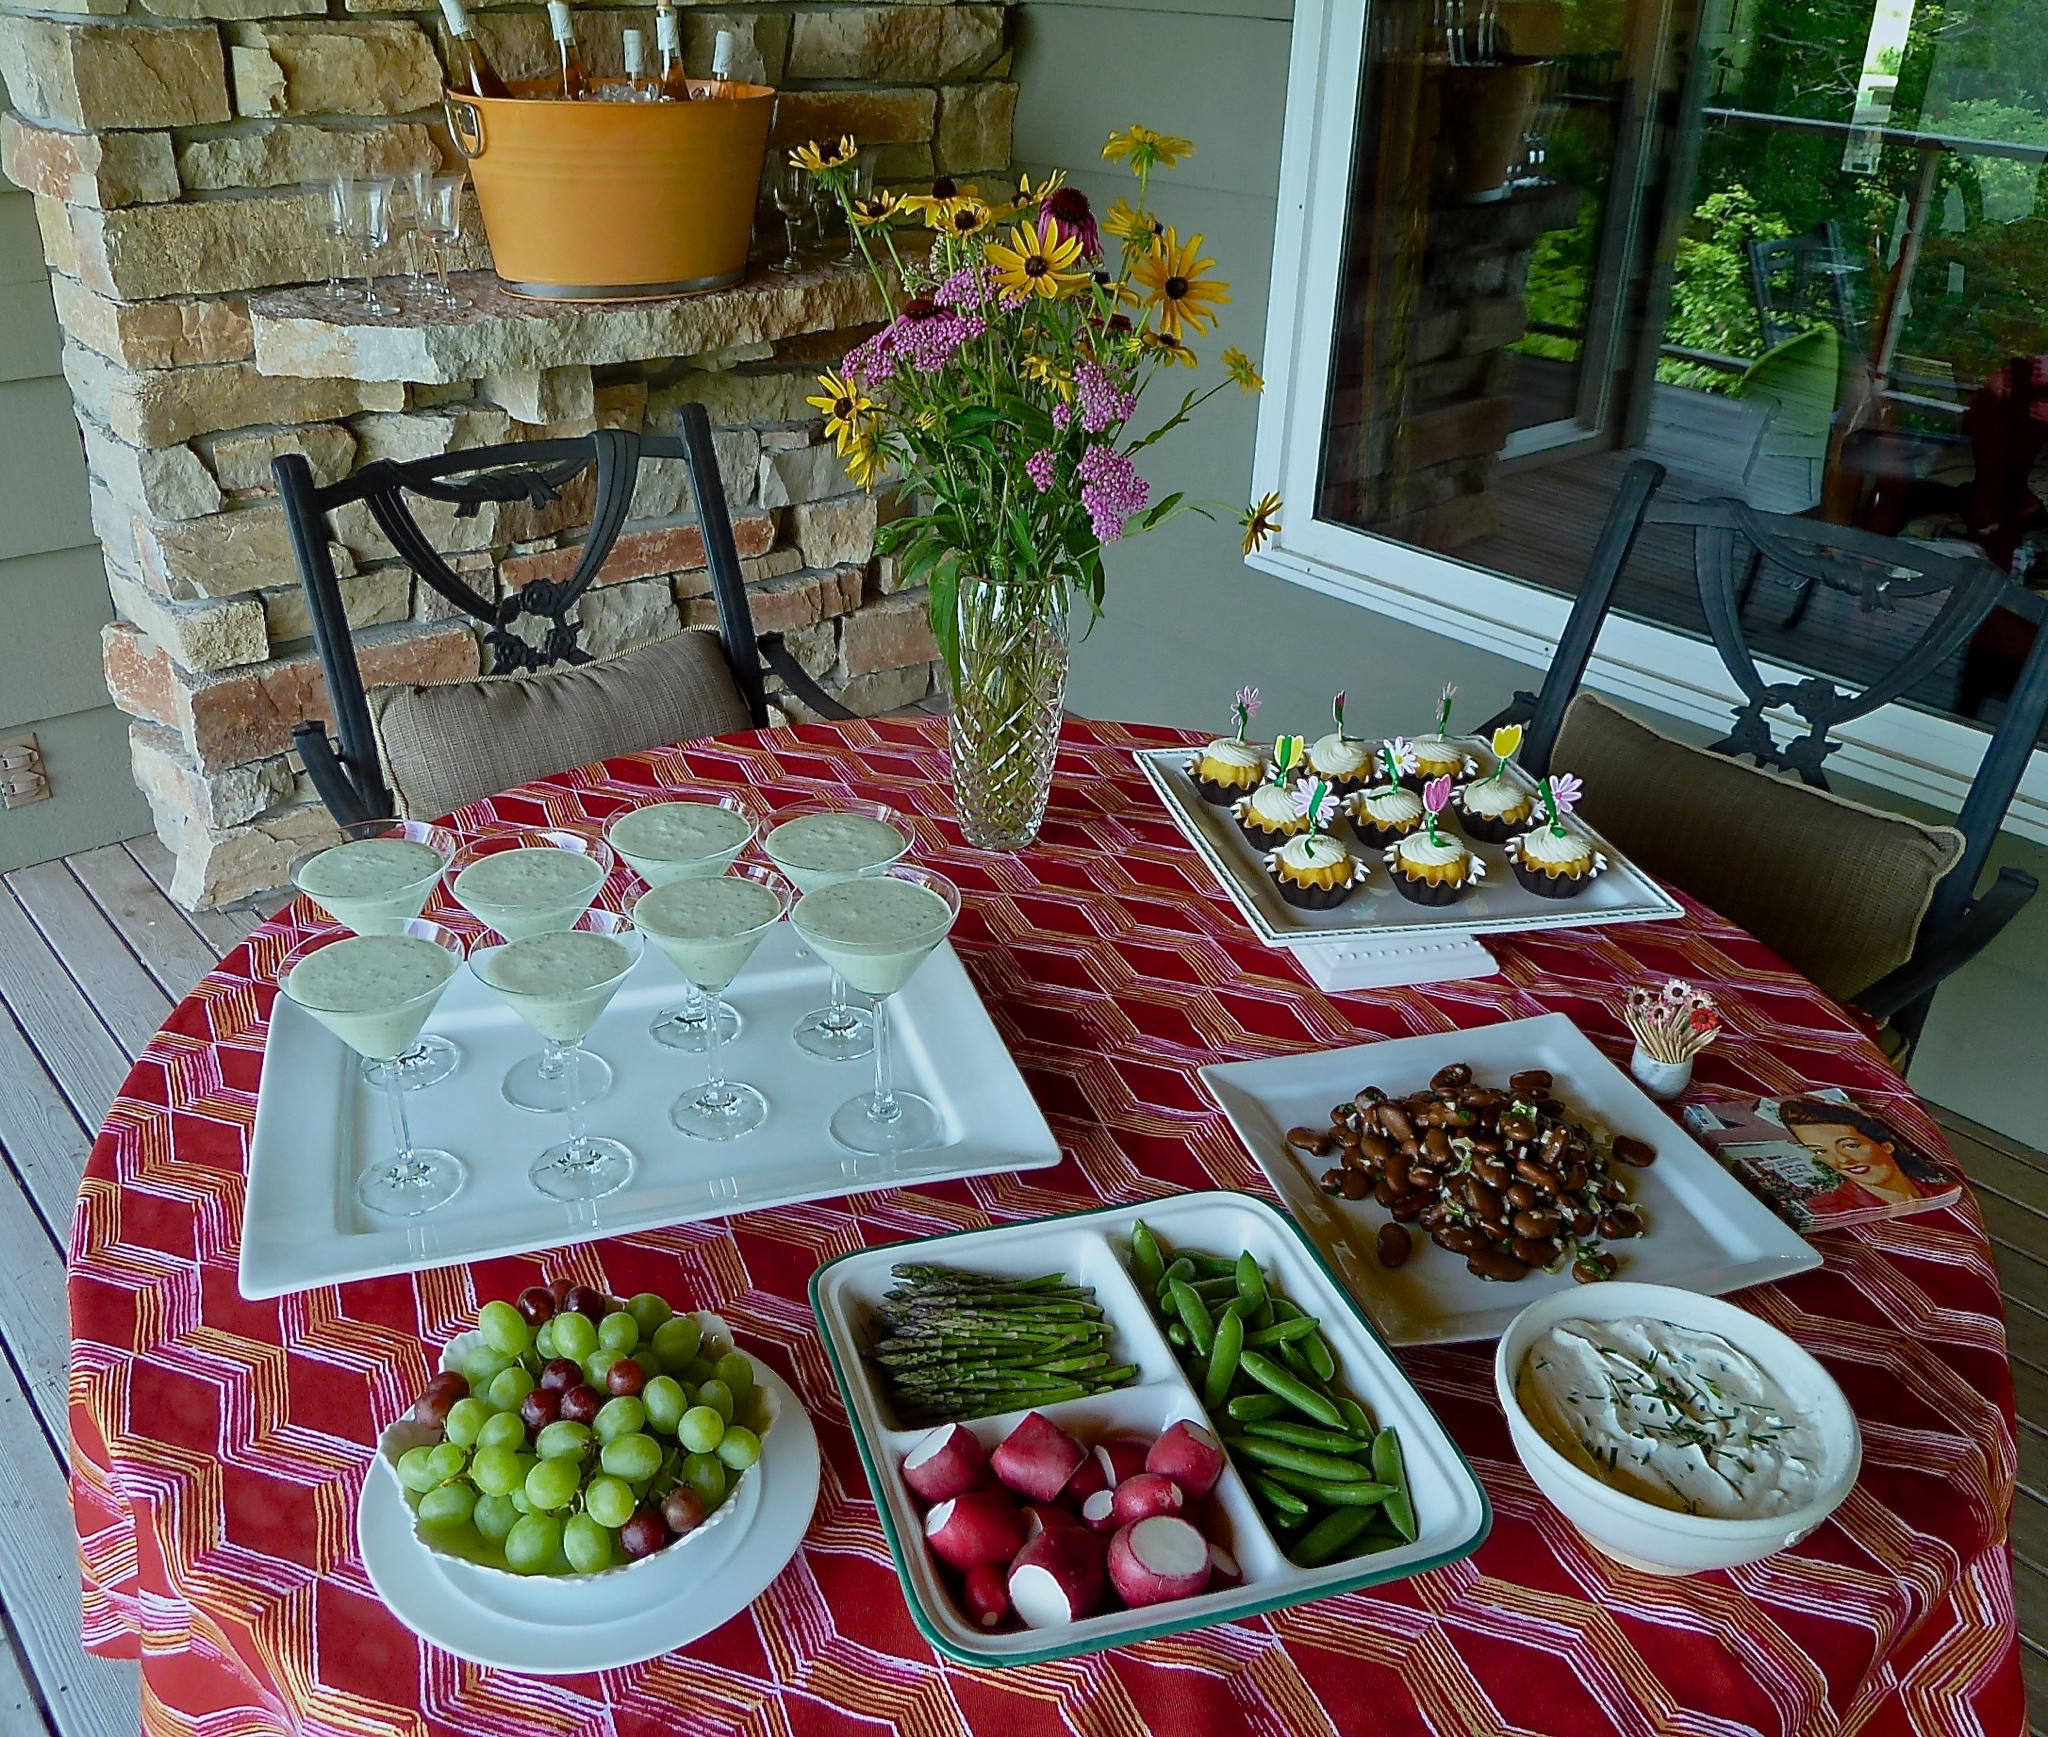 cindi_food&drink_spiritedtable_photo4.jpg